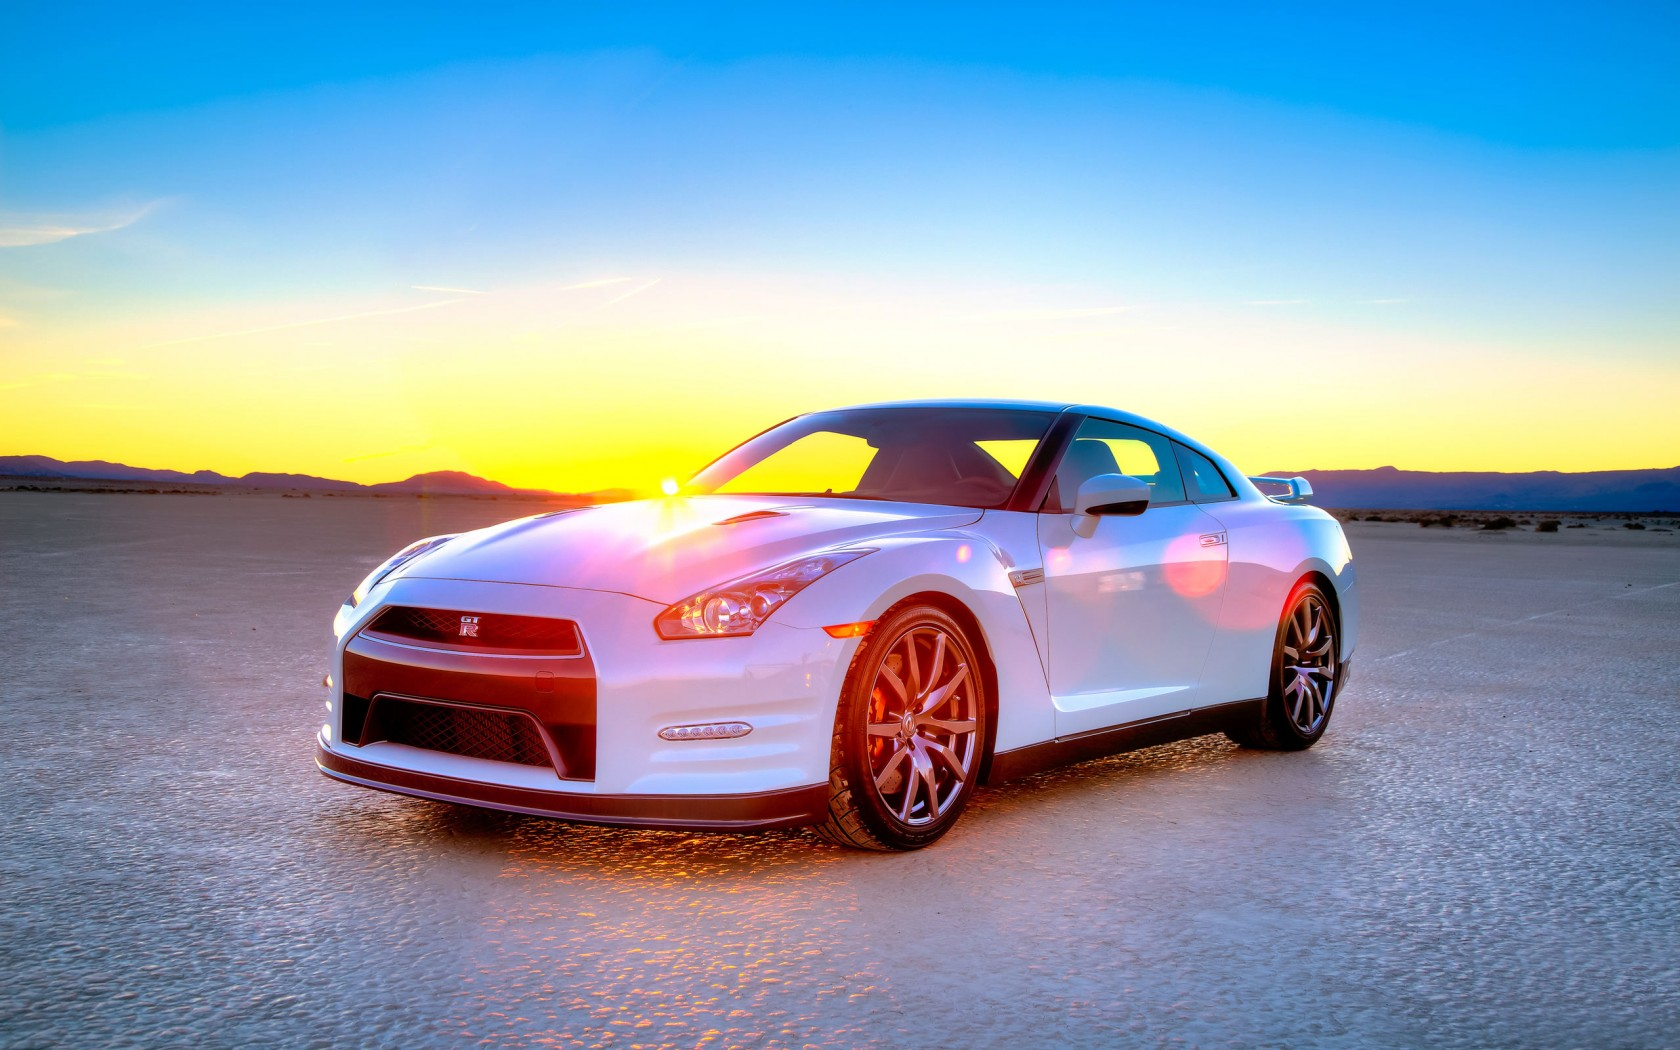 2014 Nissan GT R Wallpaper HD Car Wallpapers ID 3233